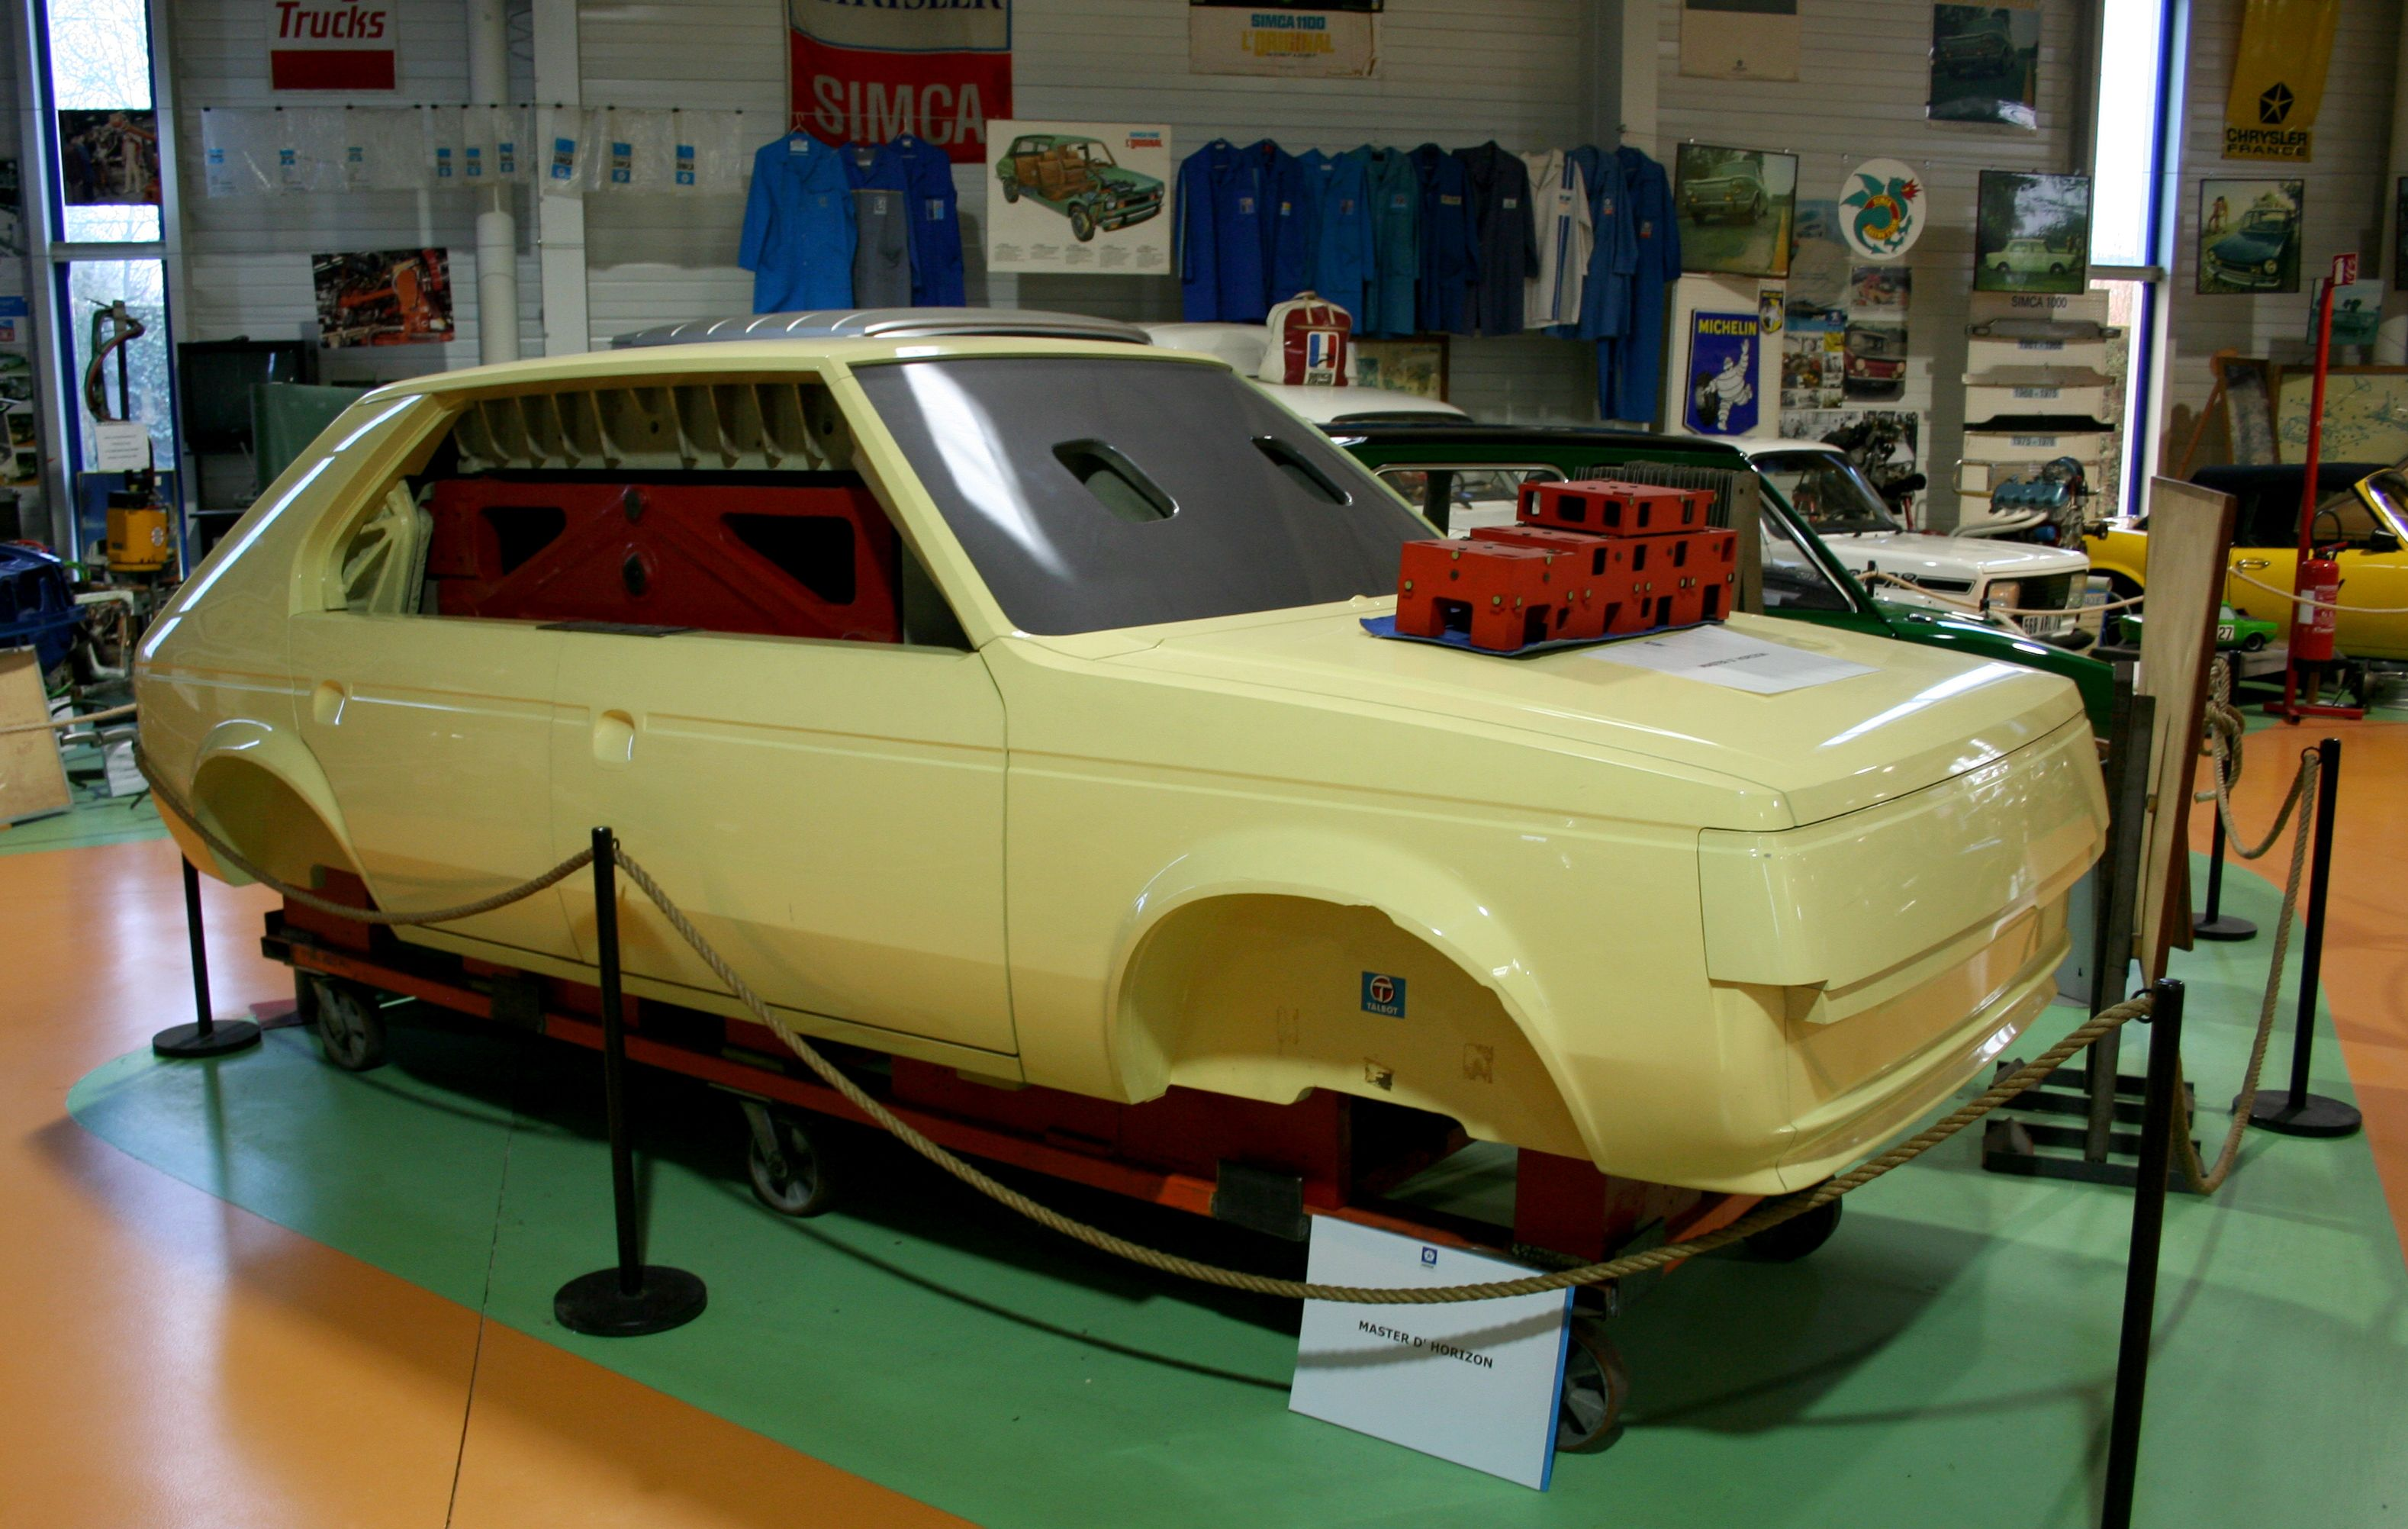 OG | 1977 Simca-Chrysler-Talbot Horizon - C2 Project | Full-size master model © Olivier Guin